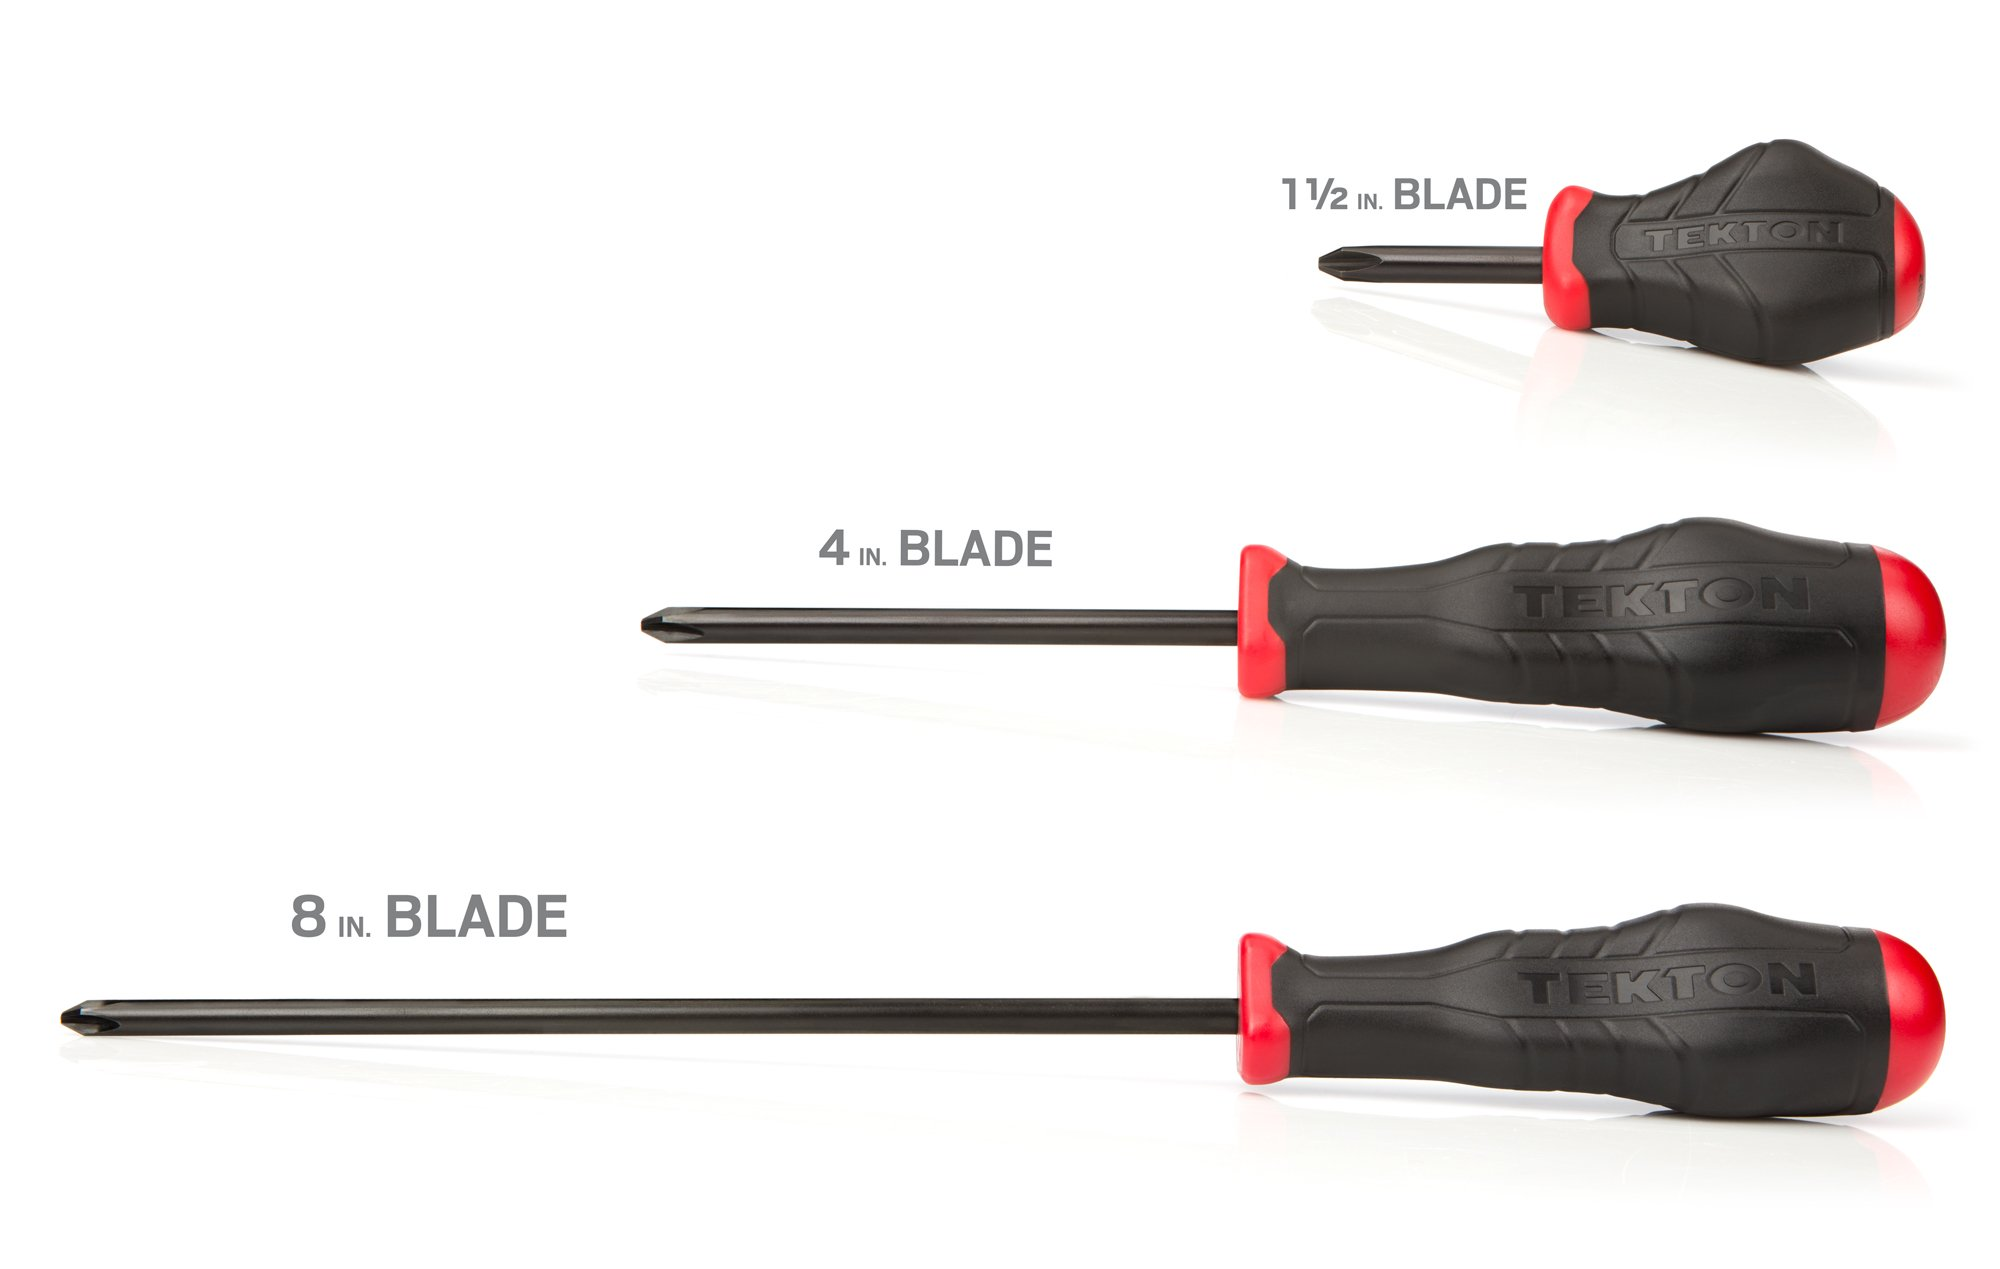 TEKTON 26759 Slotted and Phillips Screwdriver Set, 16-Piece by TEKTON (Image #2)